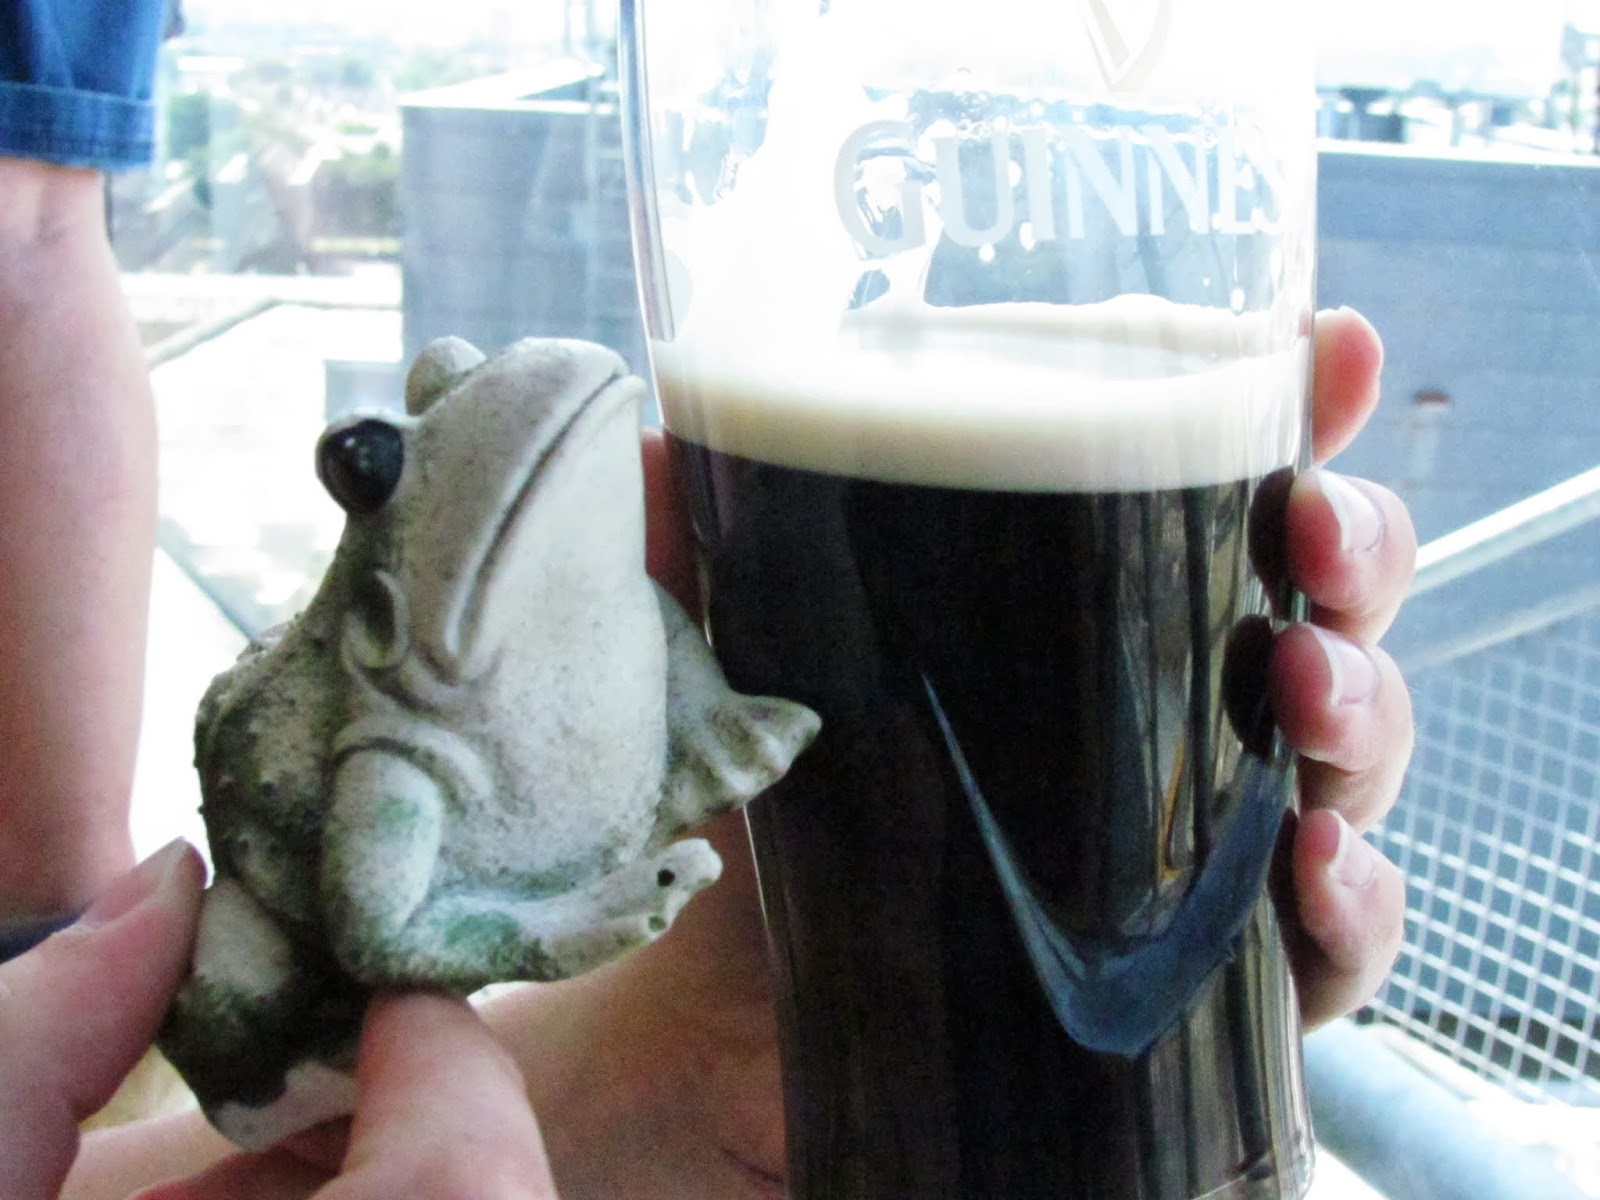 Frog poses with a pint of Guinness at the Guinness Storehouse, Dublin, Ireland